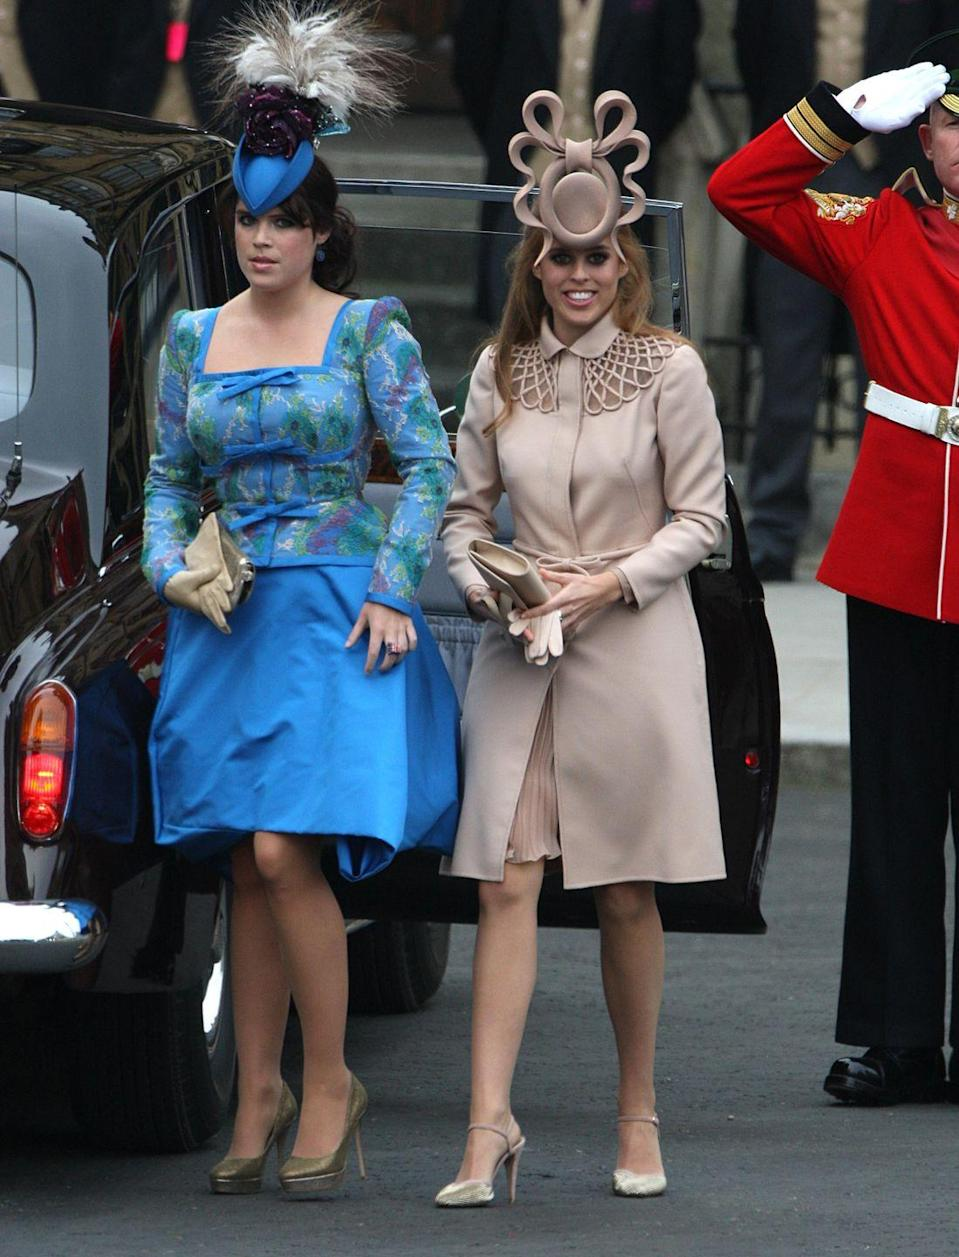 """<p>Establishing a dress code for guests beyond just """"cocktail"""" leads to memorable outfits—and better photos. Plus, an over-the-top fascinator really commands a Zoom ceremony. </p><p><strong>More</strong>: <a href=""""https://www.townandcountrymag.com/style/fashion-trends/g19839949/hats-fascinators-to-wear-royal-wedding/"""" rel=""""nofollow noopener"""" target=""""_blank"""" data-ylk=""""slk:30 Hats and Fascinators to Wear to the Royal Wedding"""" class=""""link rapid-noclick-resp"""">30 Hats and Fascinators to Wear to the Royal Wedding</a></p>"""